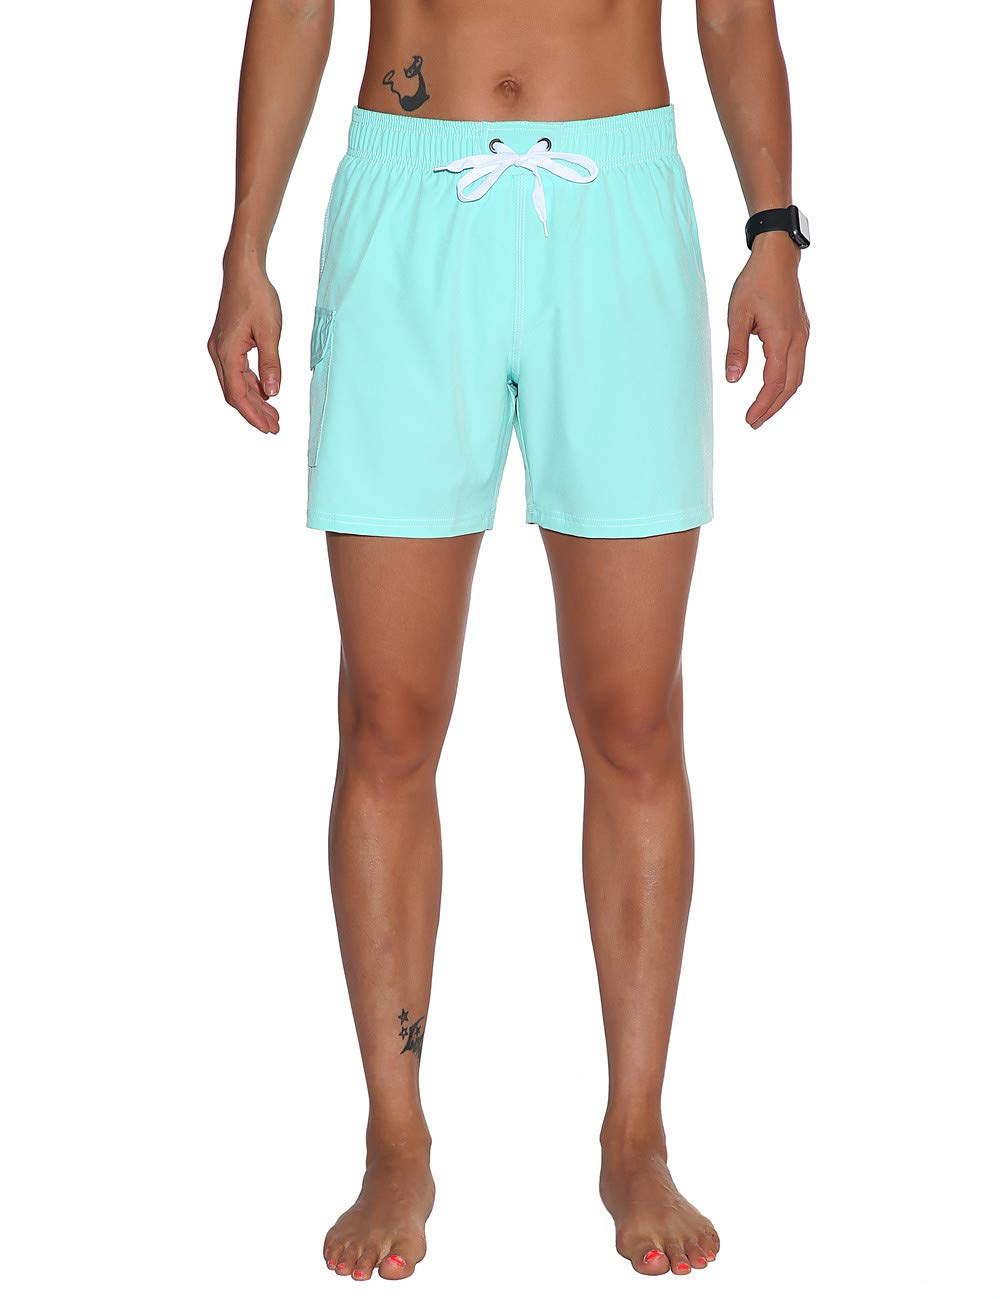 bluee(Side Velcro Pocket) Unitop Womens Bathing Boardshorts Swim Shorts Quick Dry with Mesh Lining